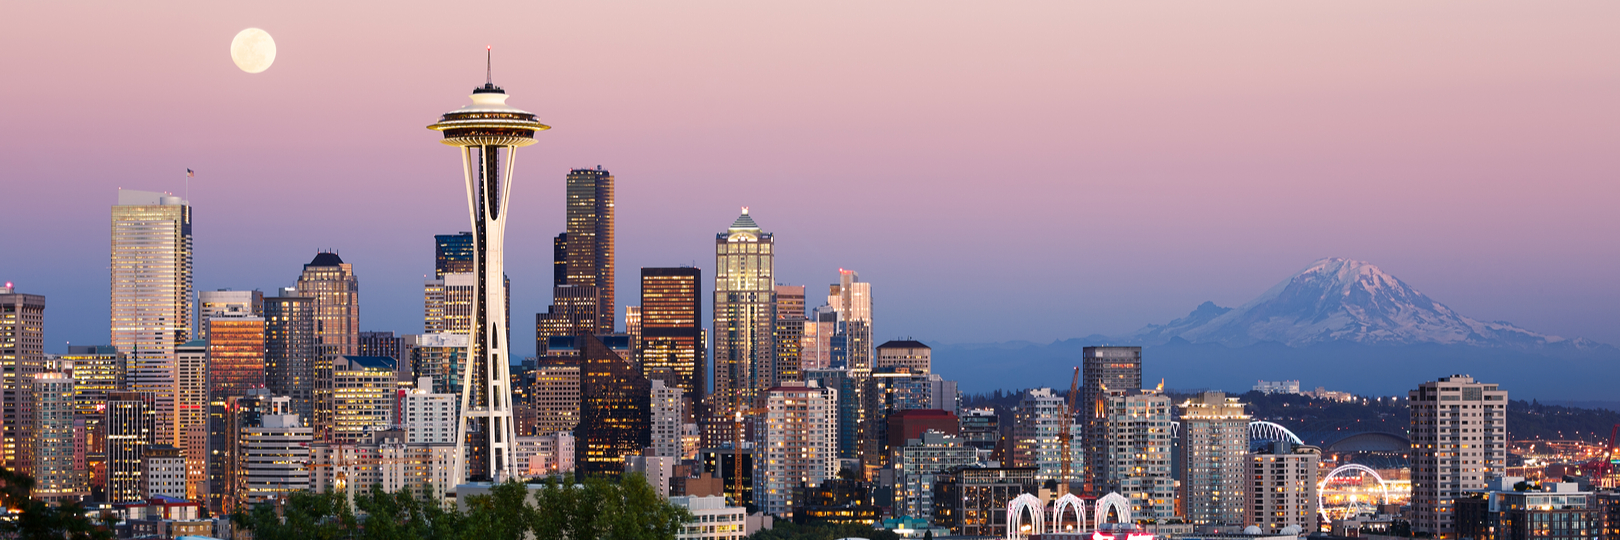 $289 per night for 2 at the Edgewater Seattle